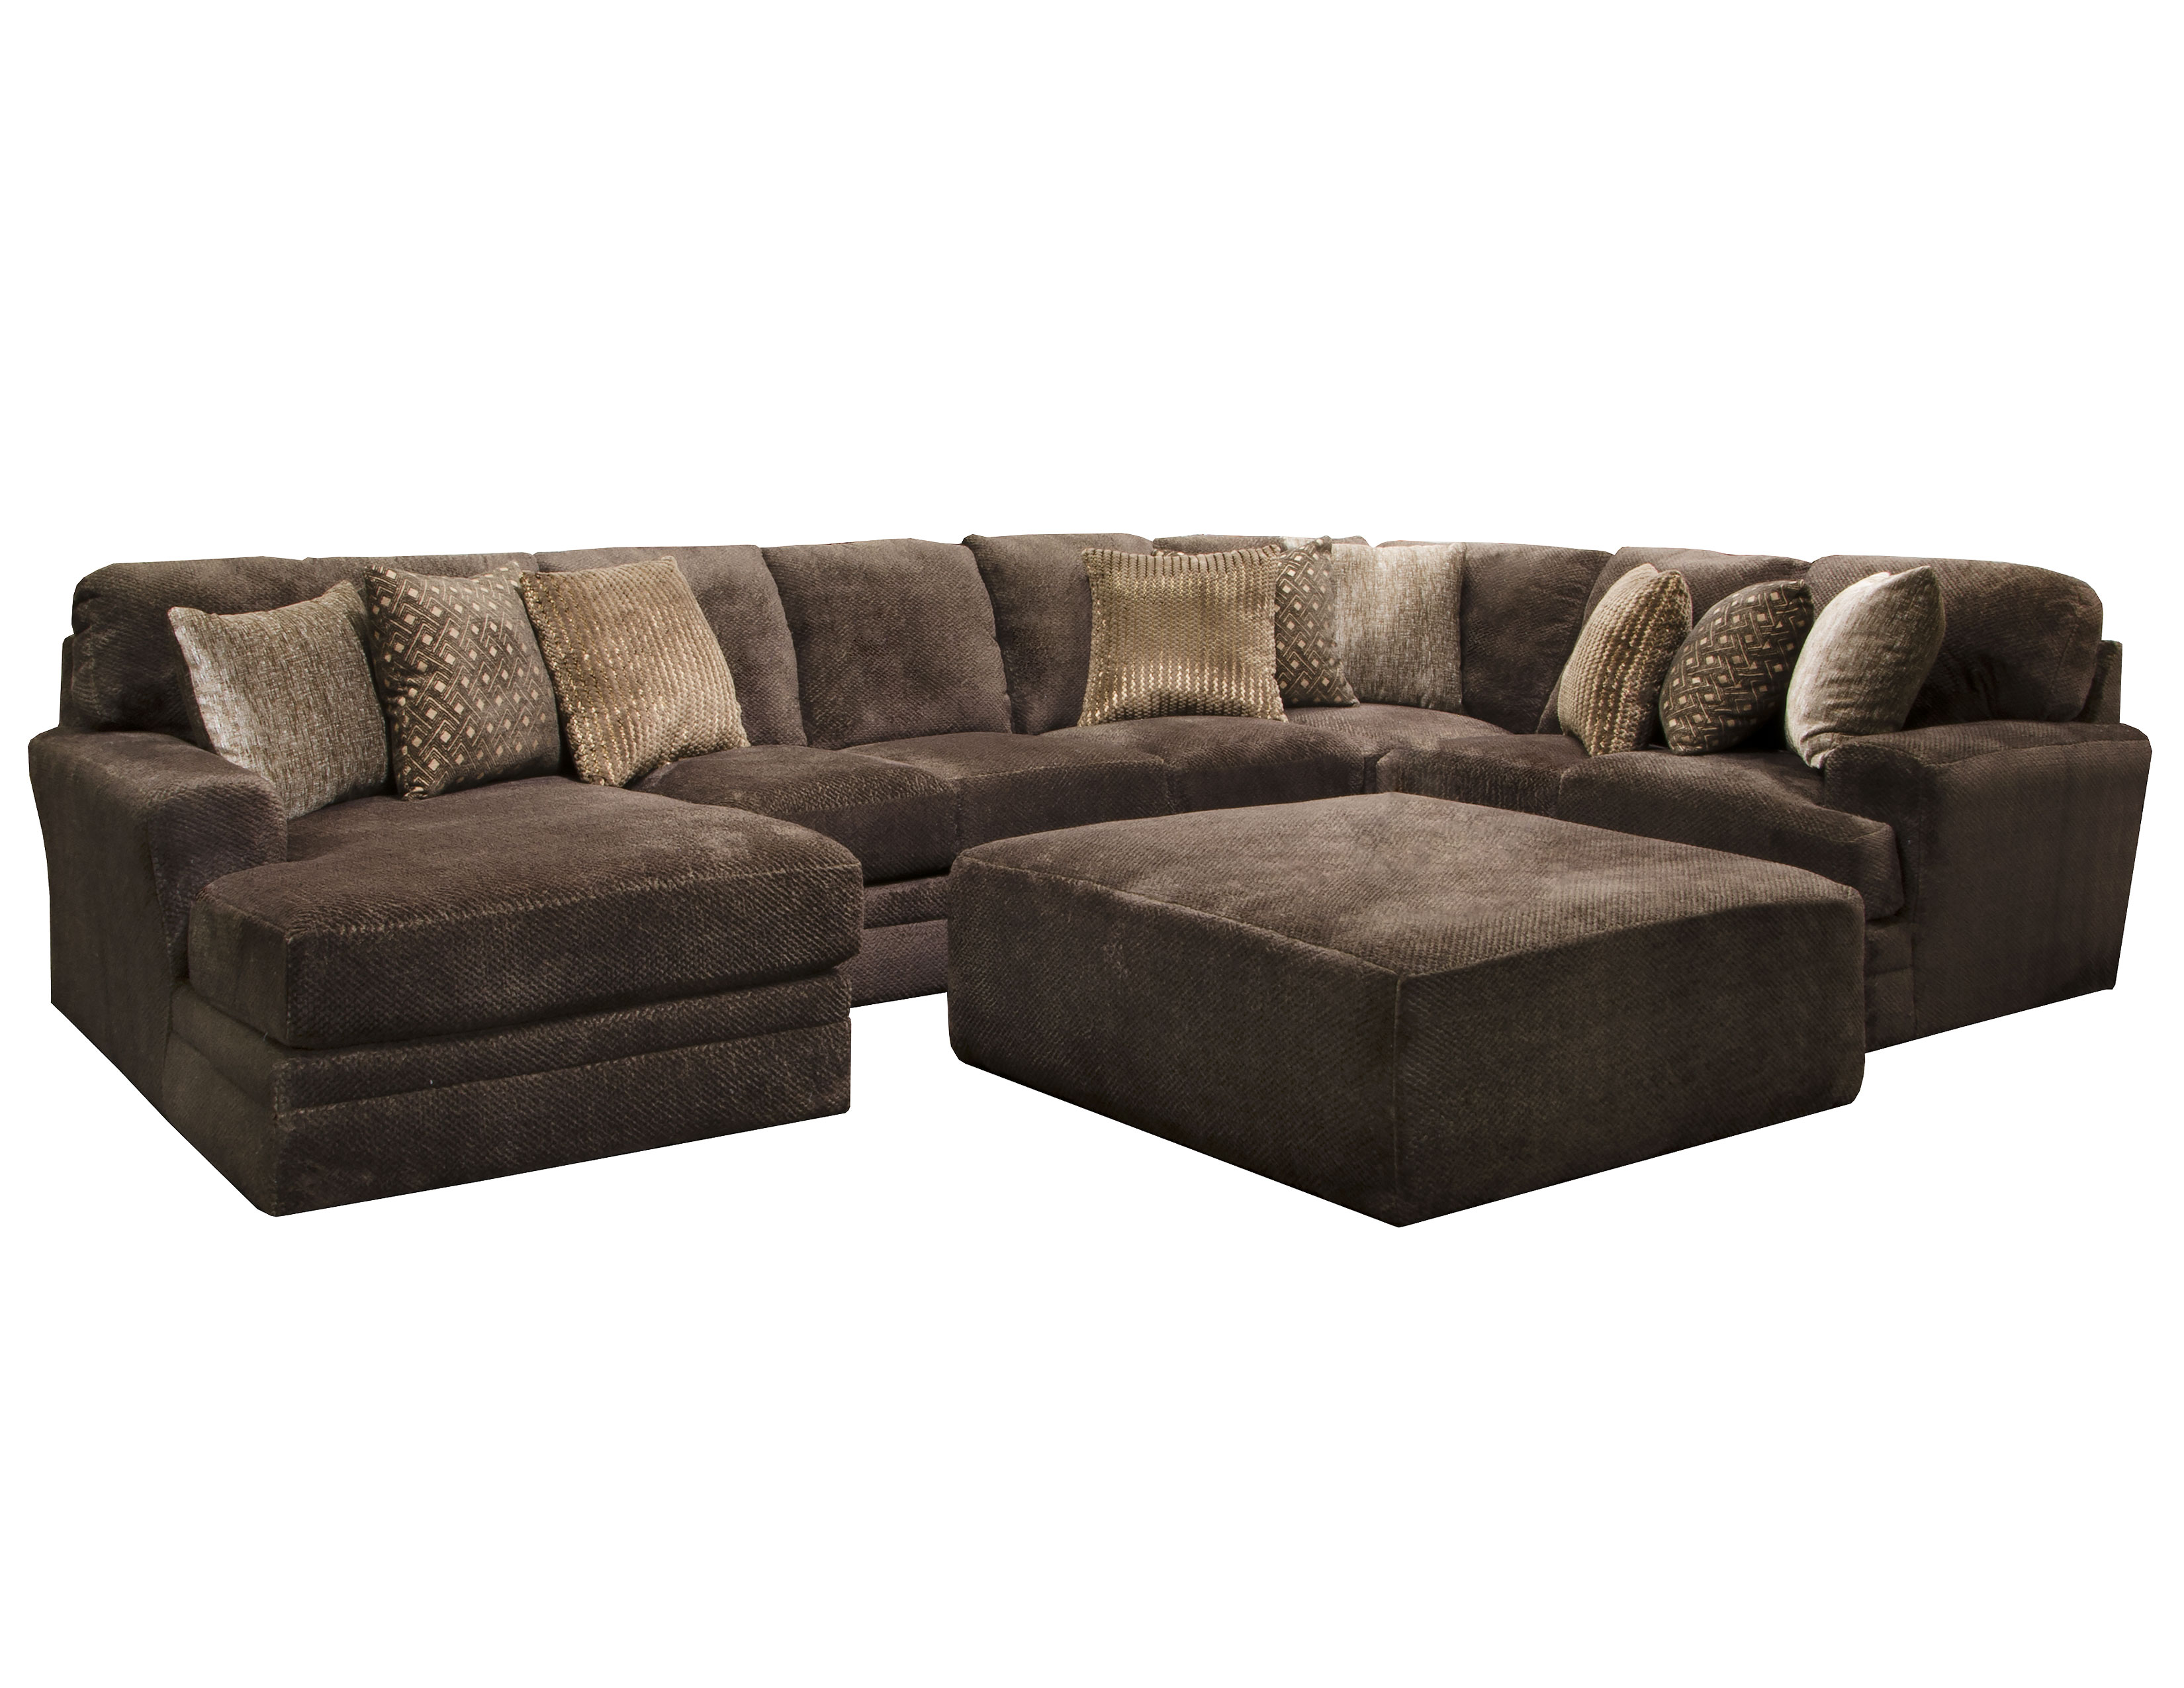 Incredible Mammoth Sectional In Chocolate 15 Pieces Sofas And Sectionals Creativecarmelina Interior Chair Design Creativecarmelinacom